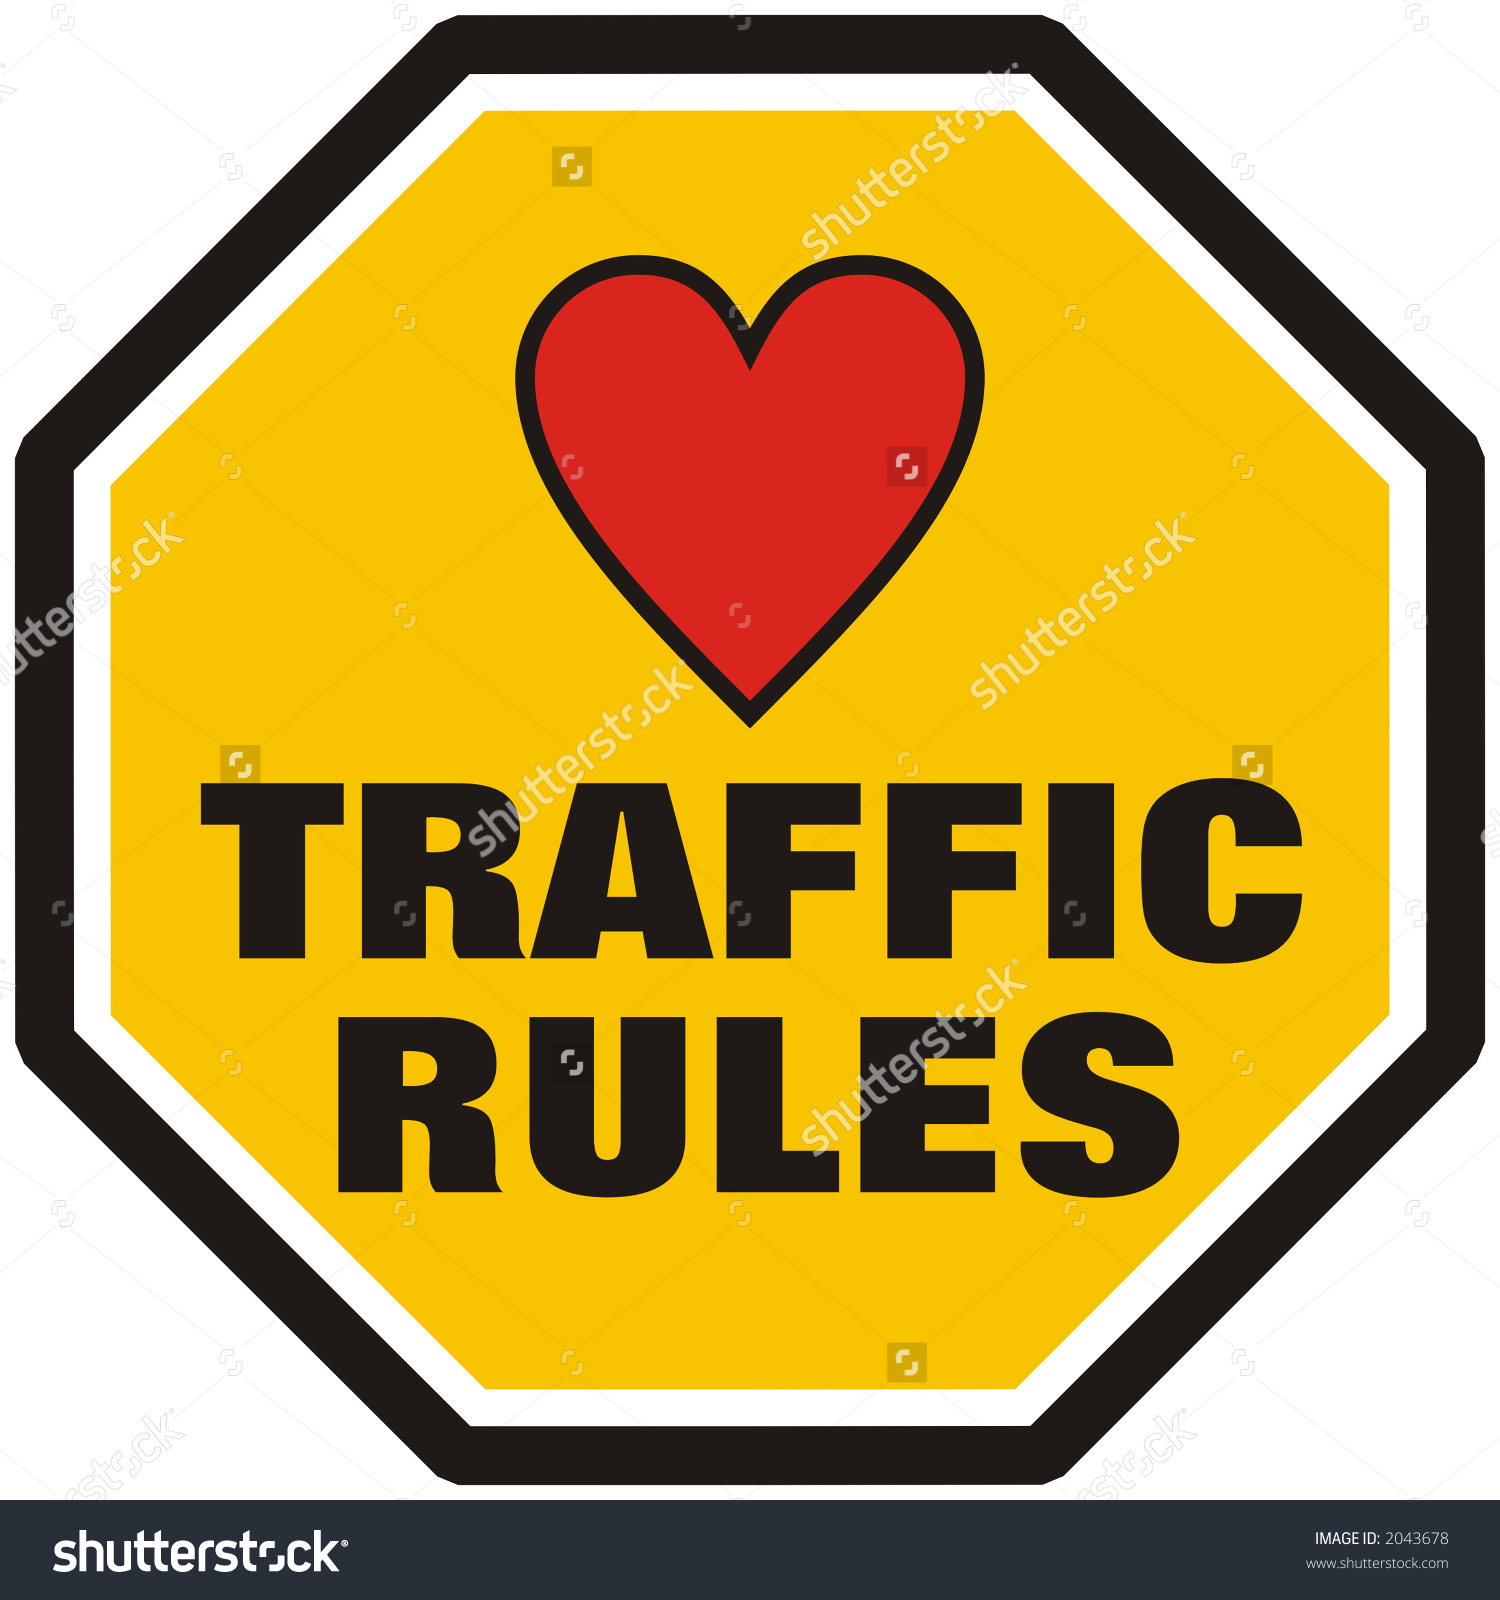 Clipart of traffic rules.